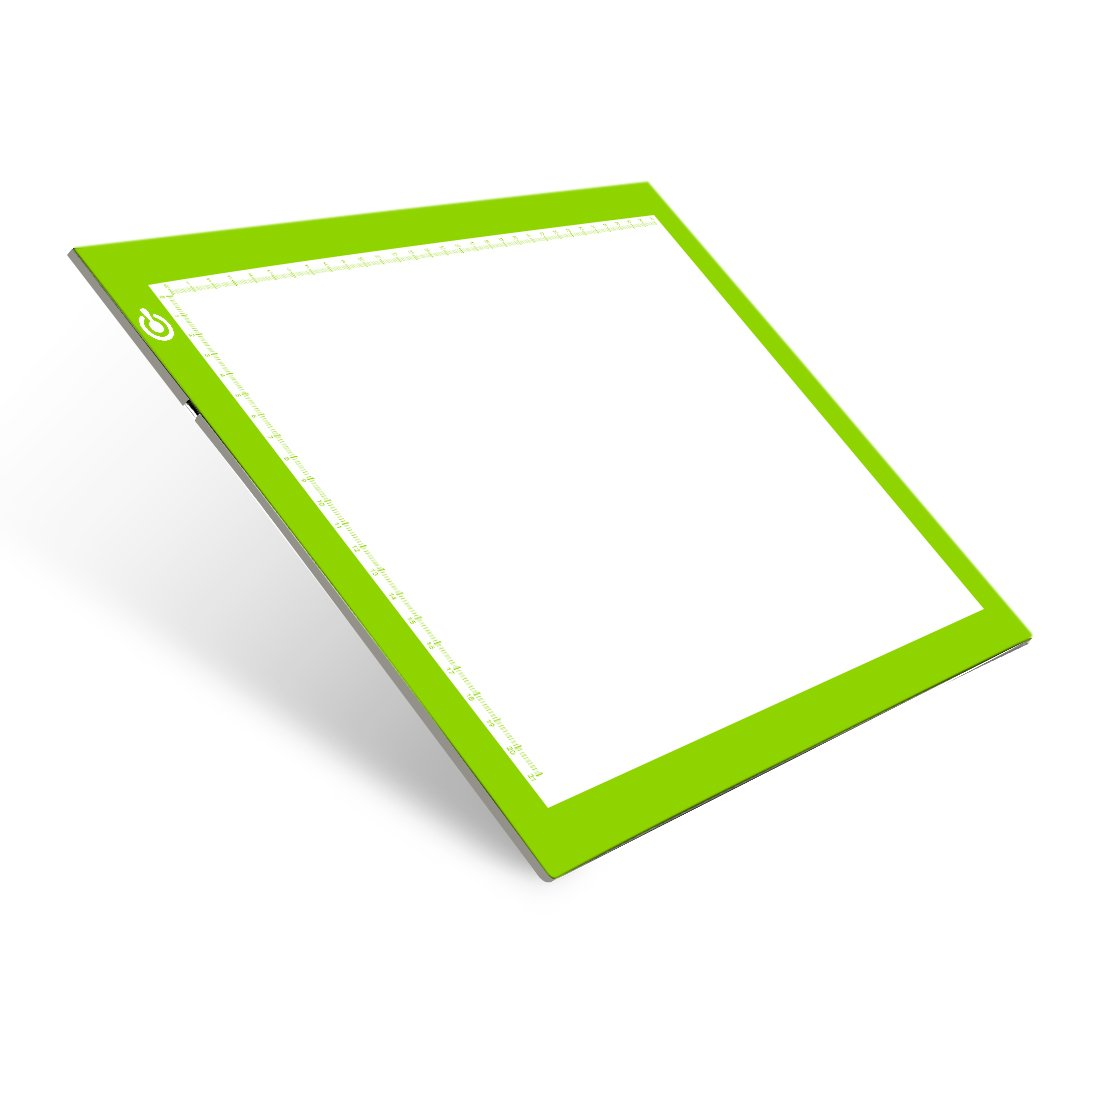 Tracing Light Table Ultra-thin A4 LED Copy Board NXENTC Light Pad Drawing Display Pad Brightness Adjustable Stencil Artist Art Tracing Tatto Table Green